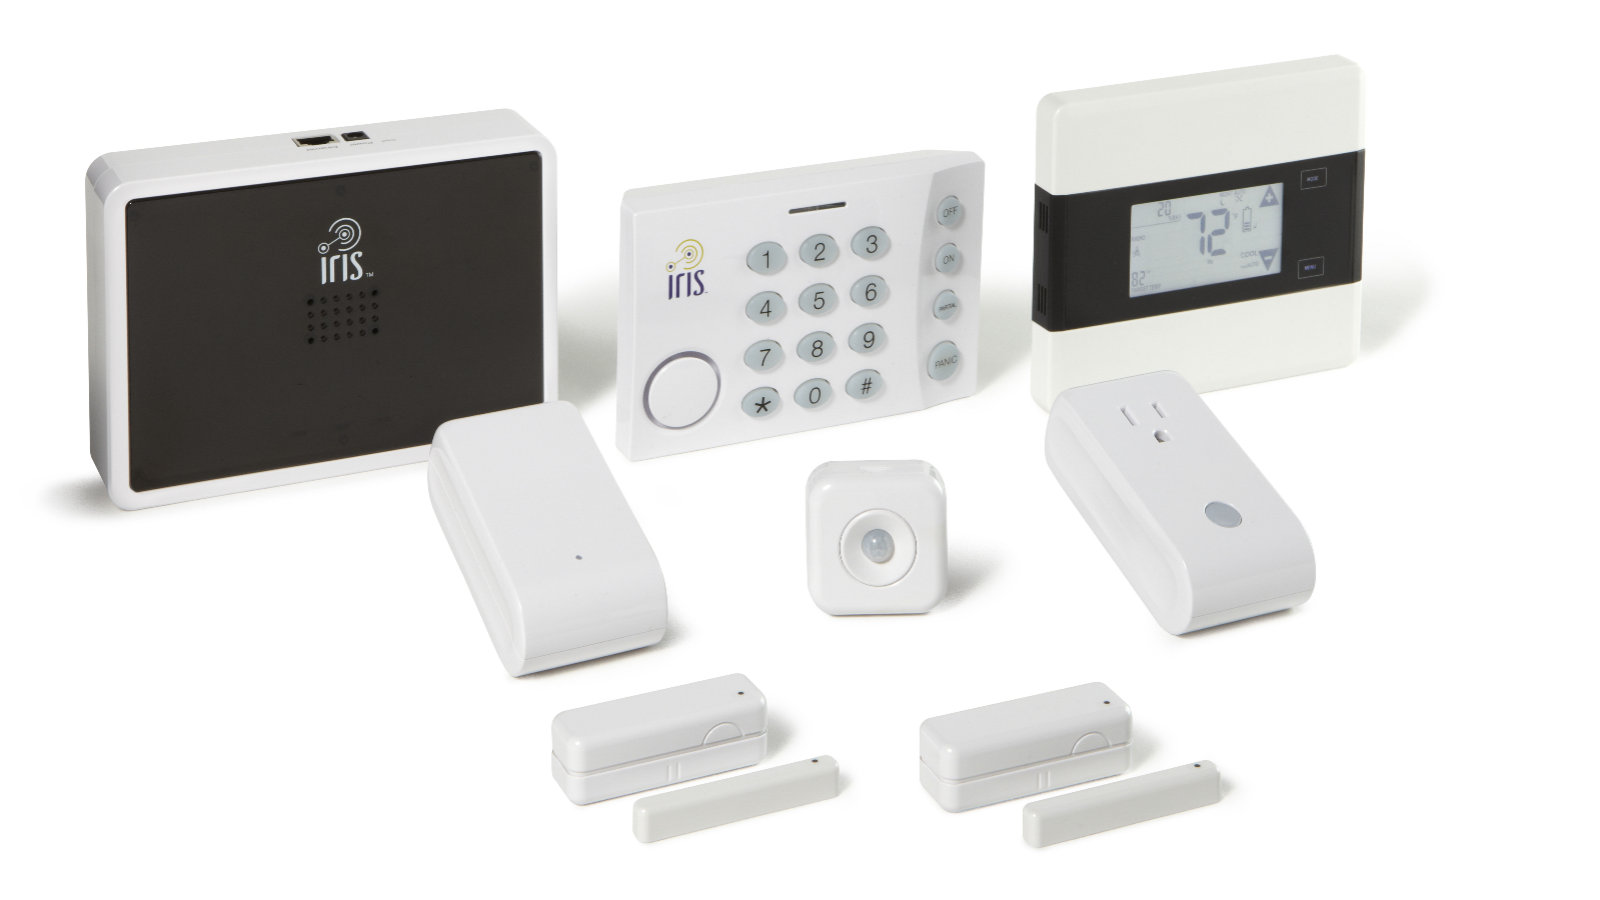 Click here to read Lowes New Home Automation System May Very Well Usher in the Jetson Era